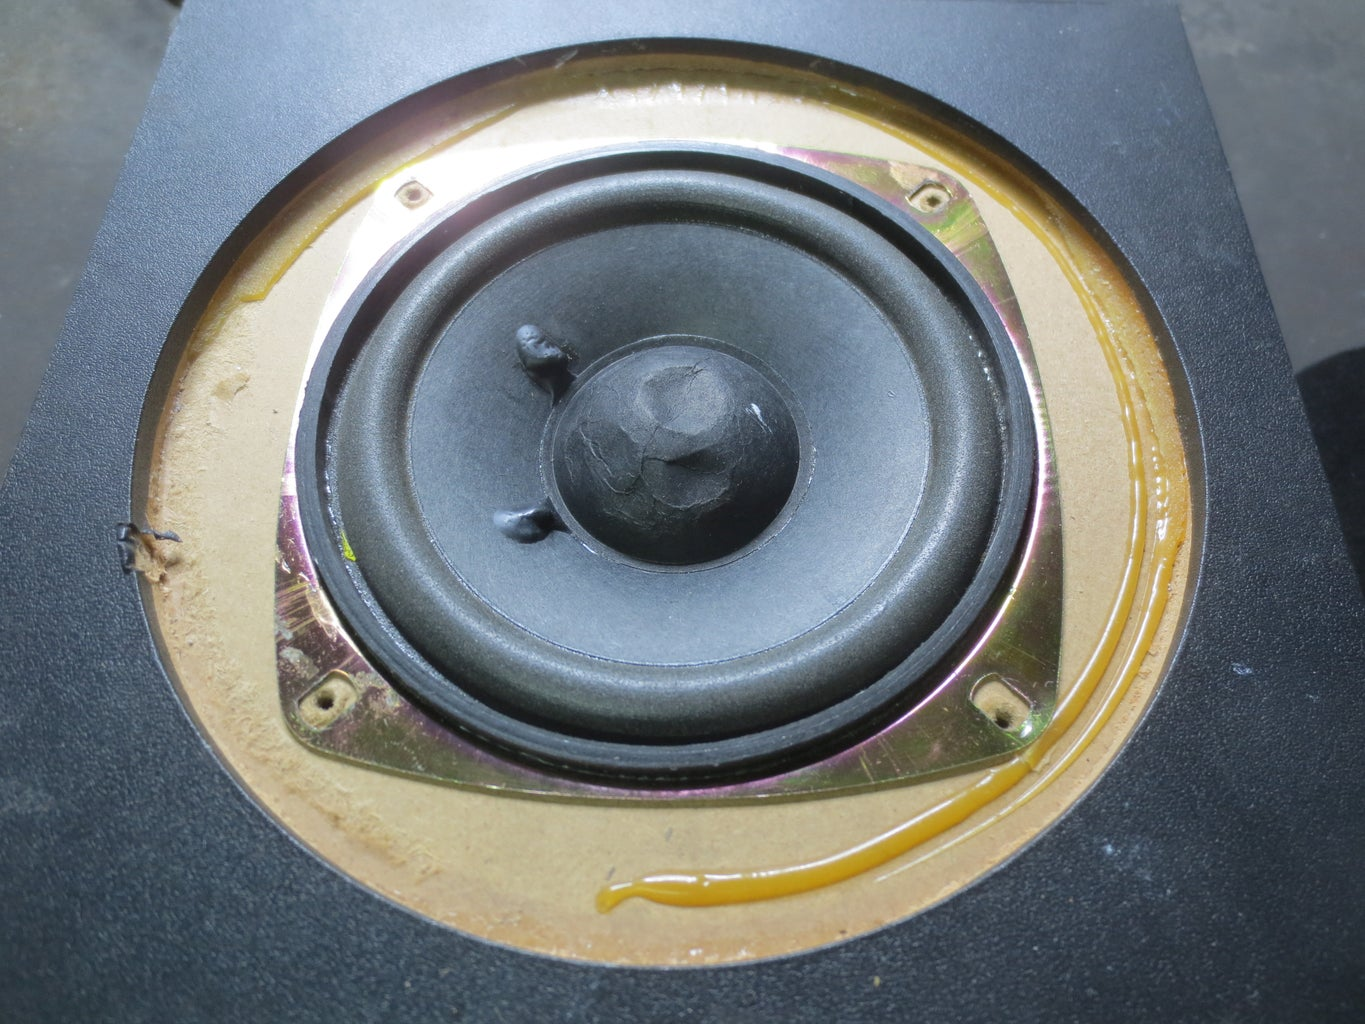 Open the Subwoofer Main Box